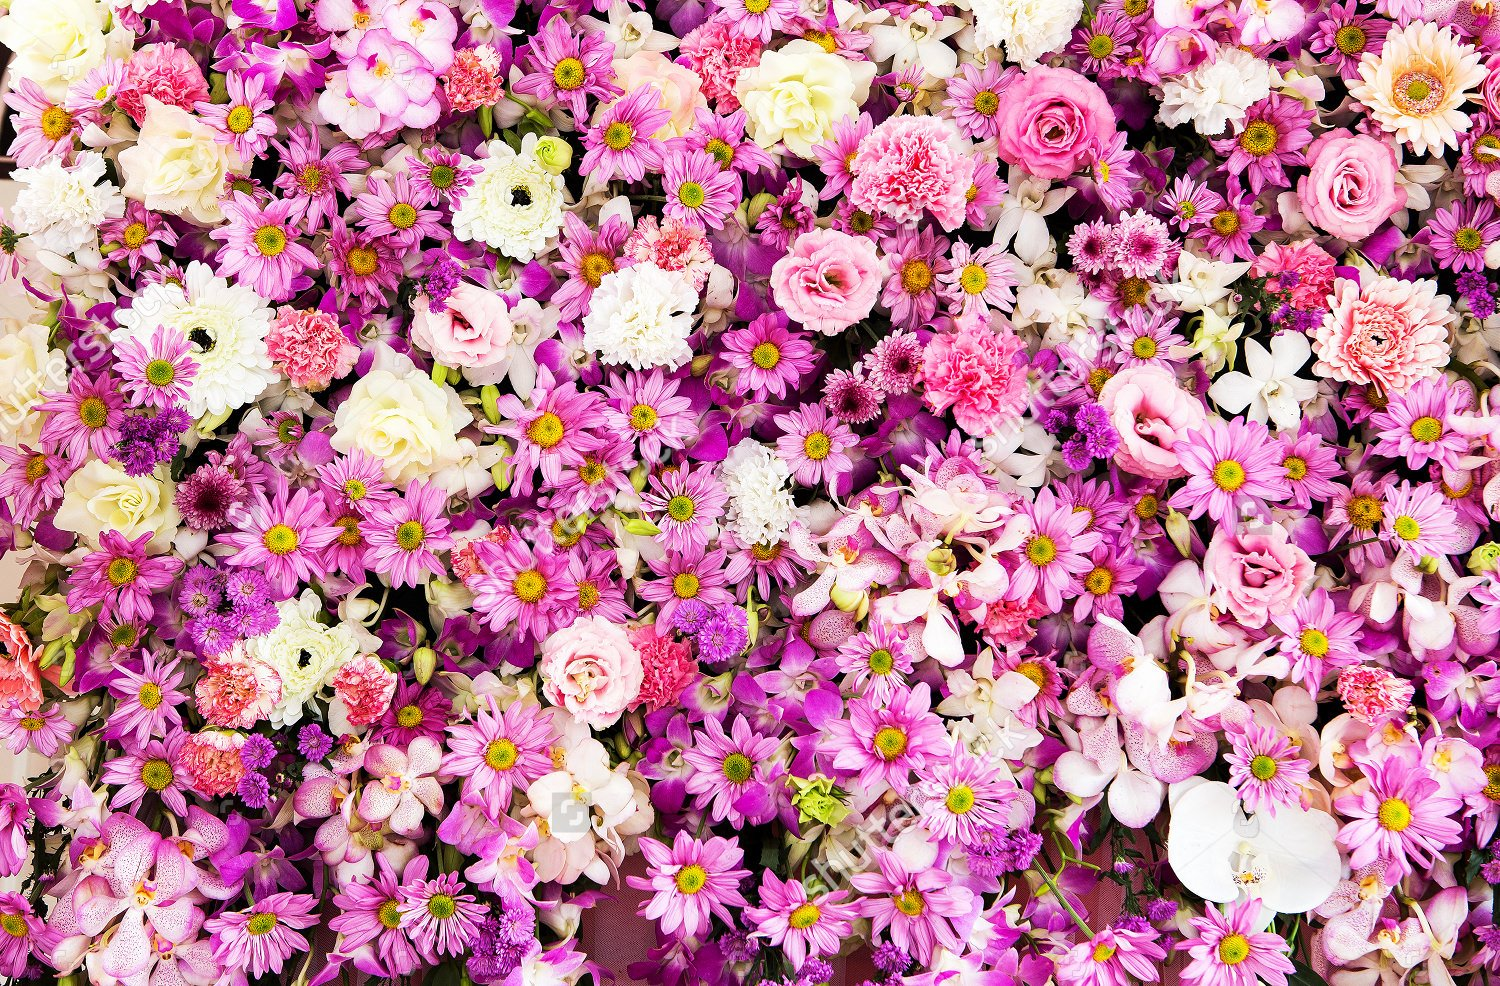 Flower Background Design Images Unique 27 Daisy Backgrounds Wallpapers